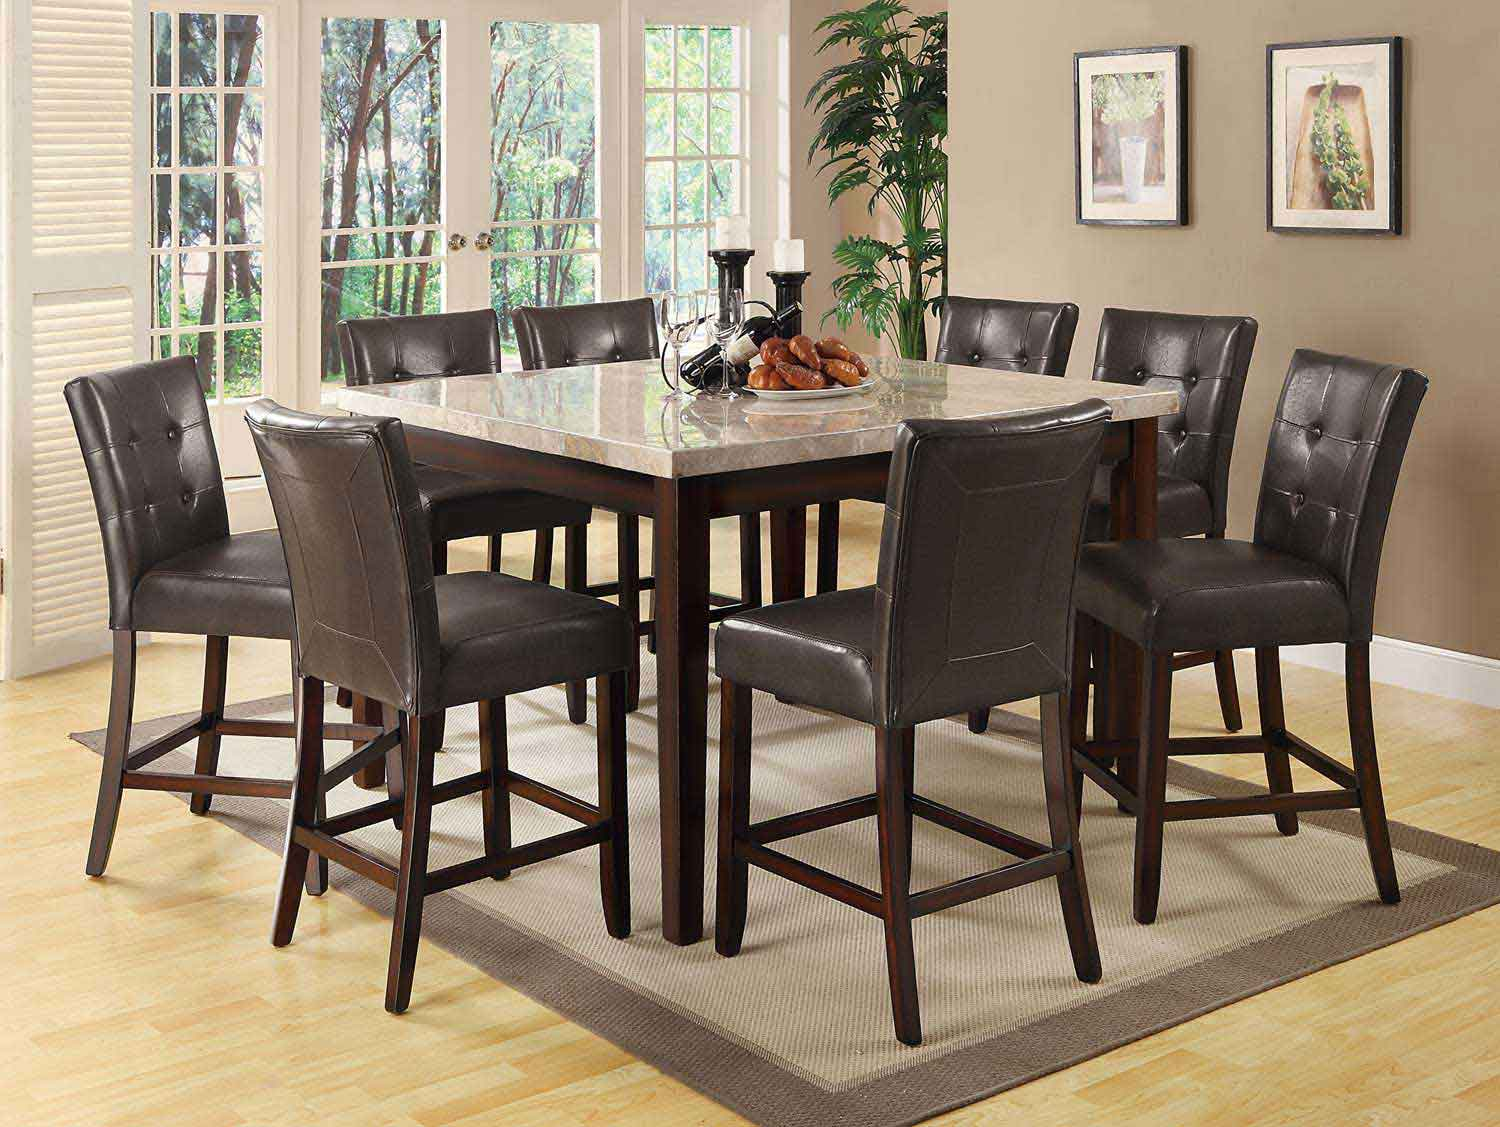 Coaster Milton Square Counter Height Dining Set - Light Top - Cappuccino